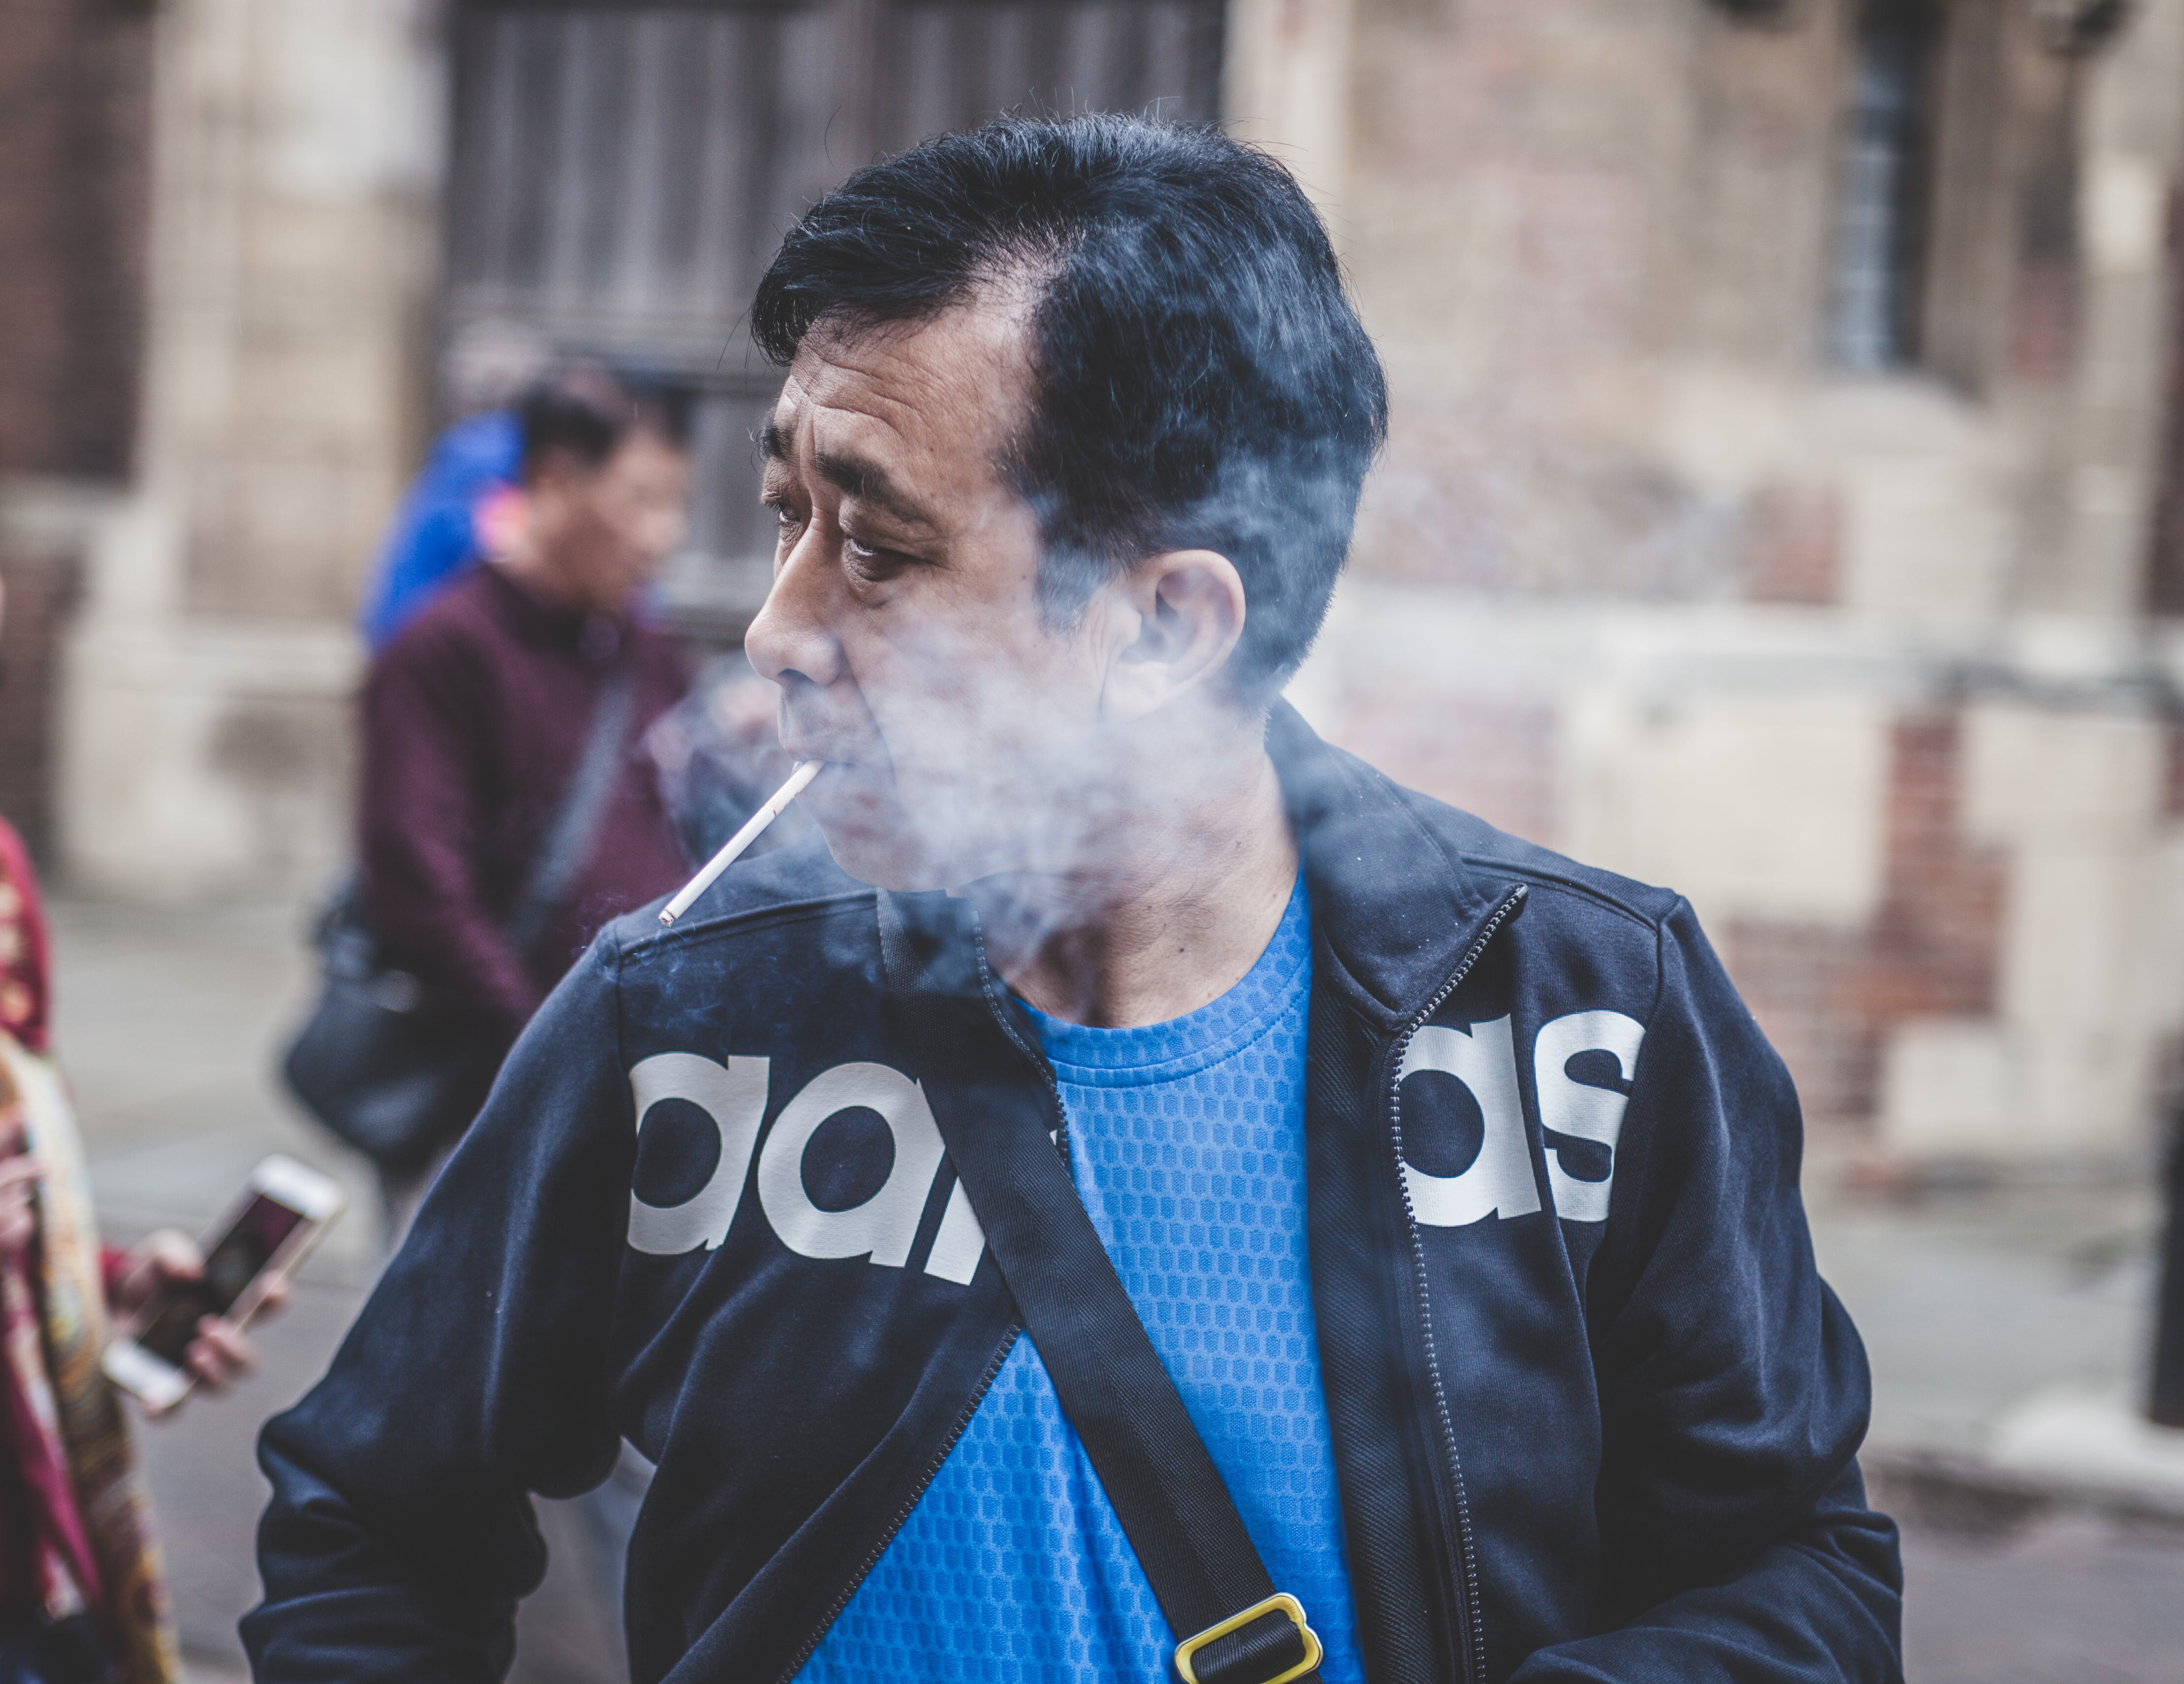 Man Smoking While Looking on Right Side